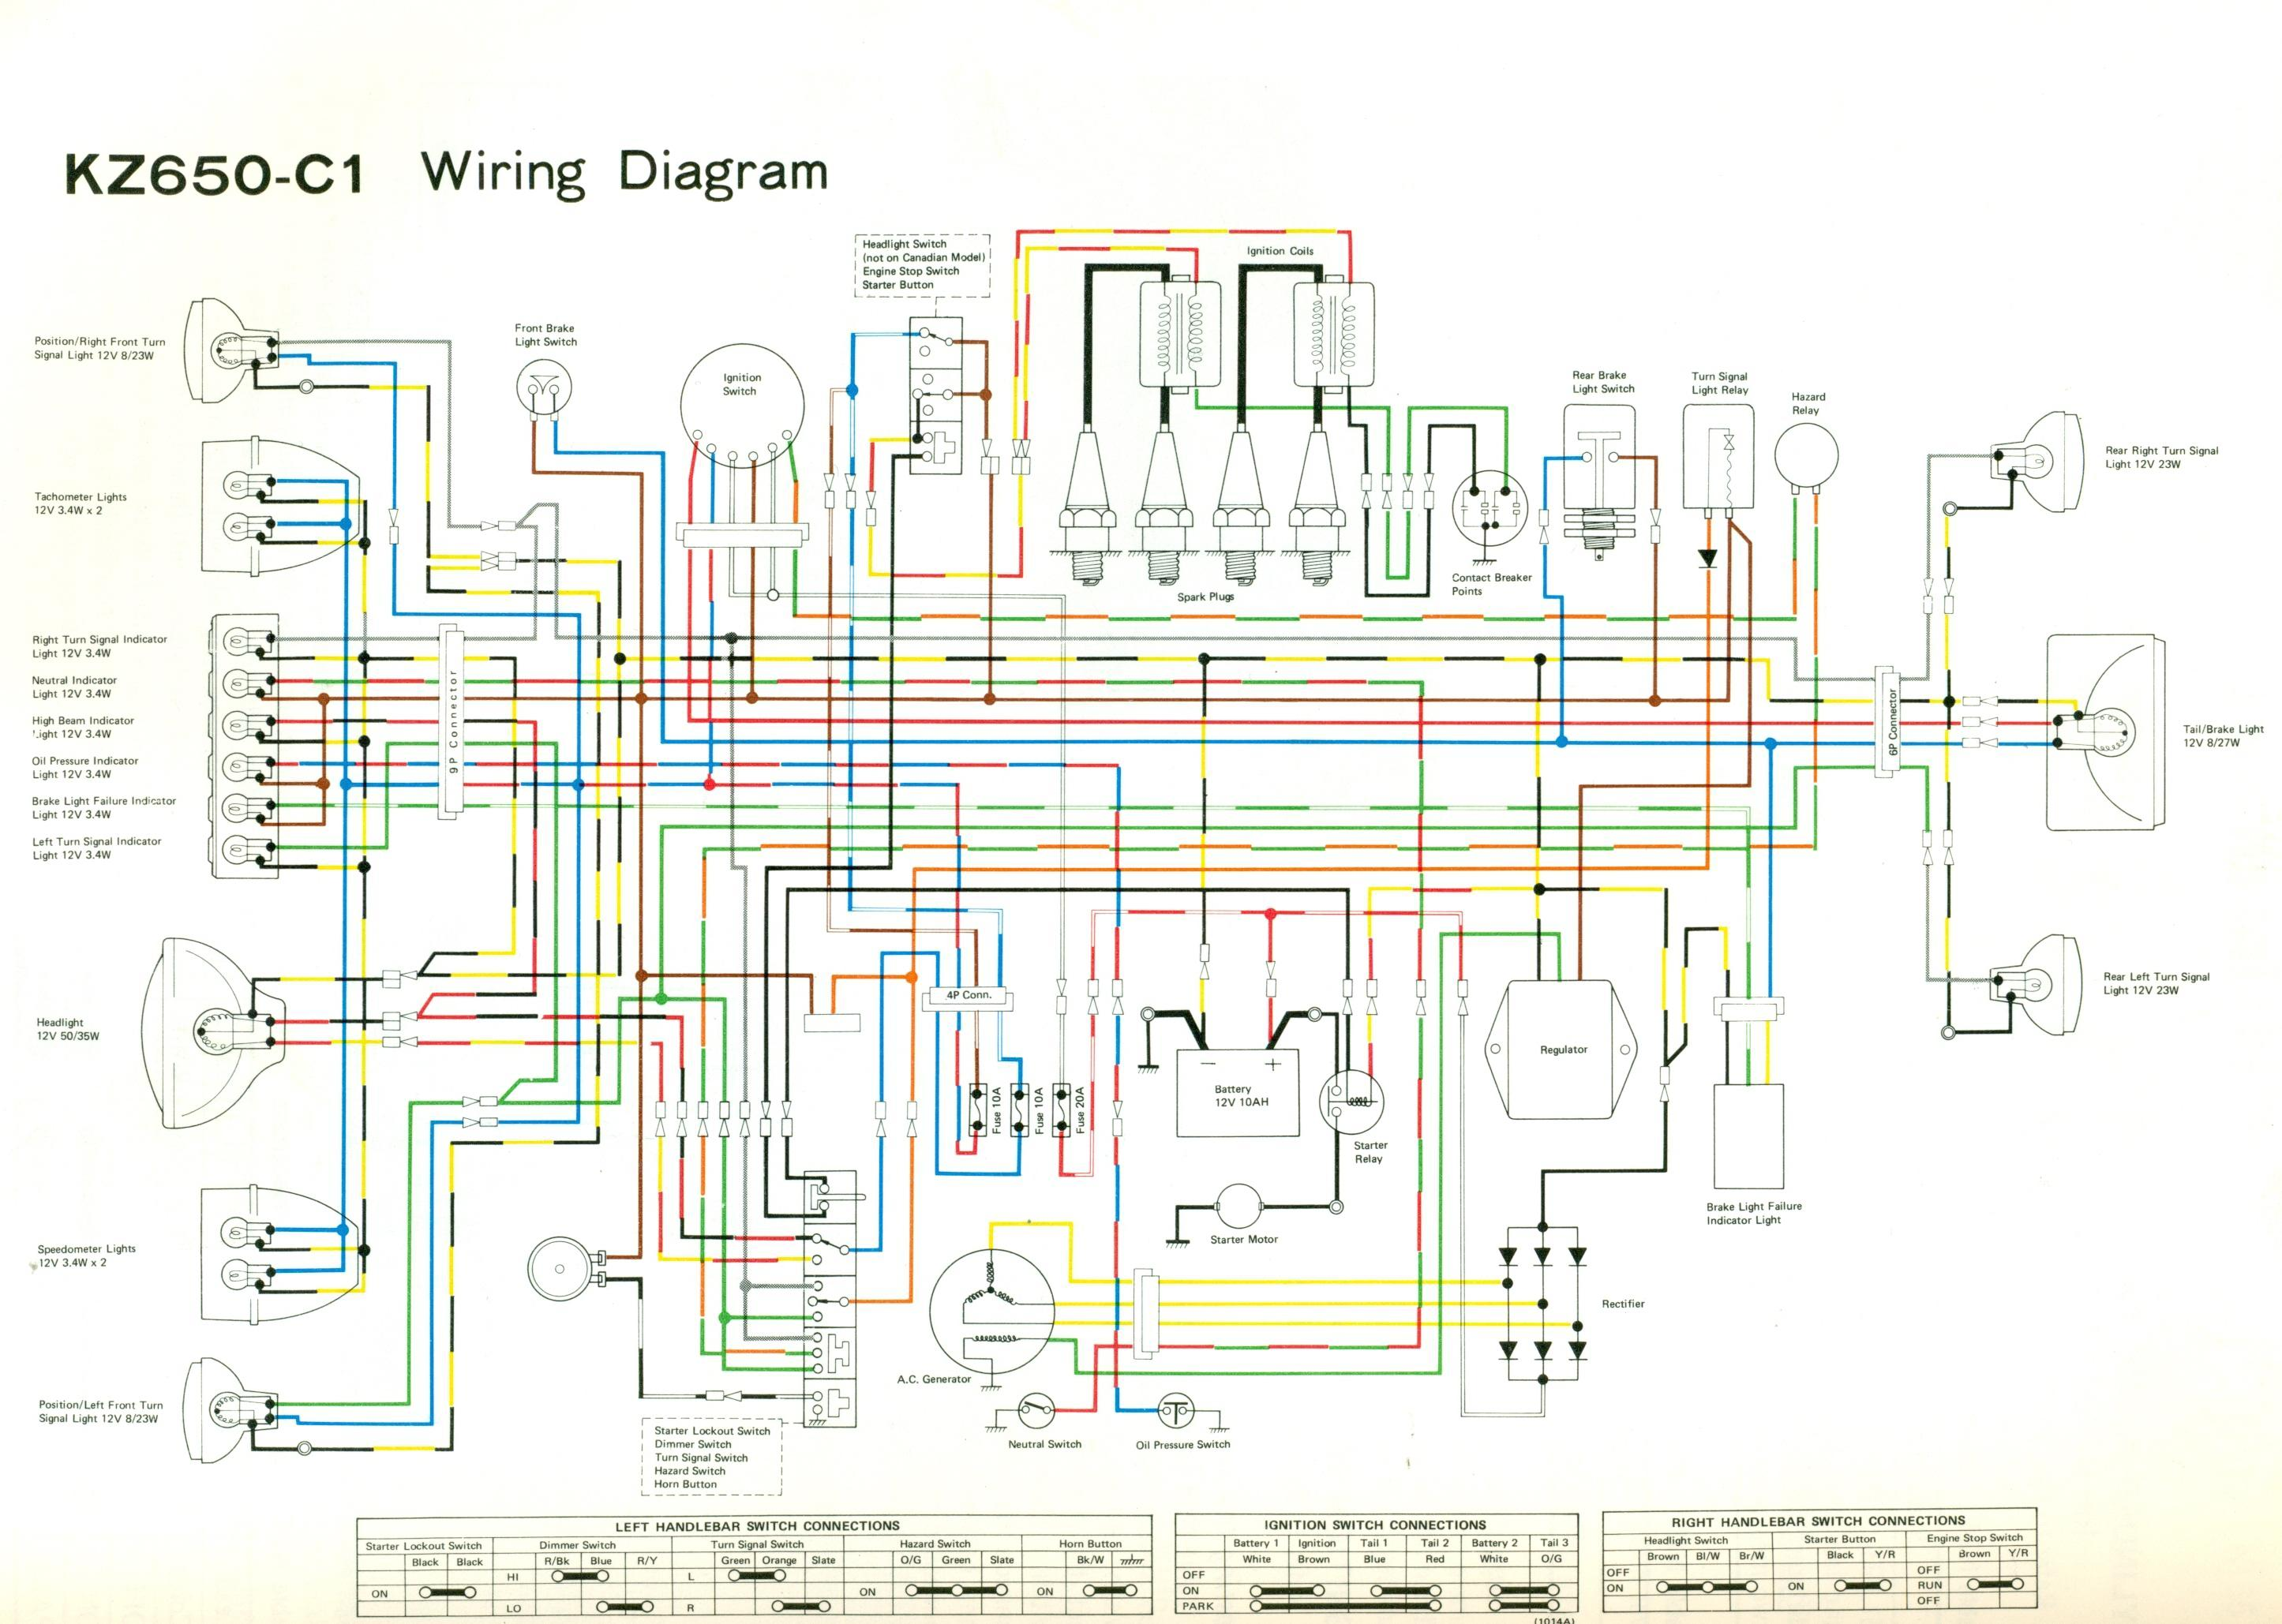 Wiring Diagrams 81 Xs850 Diagram Kz650 C